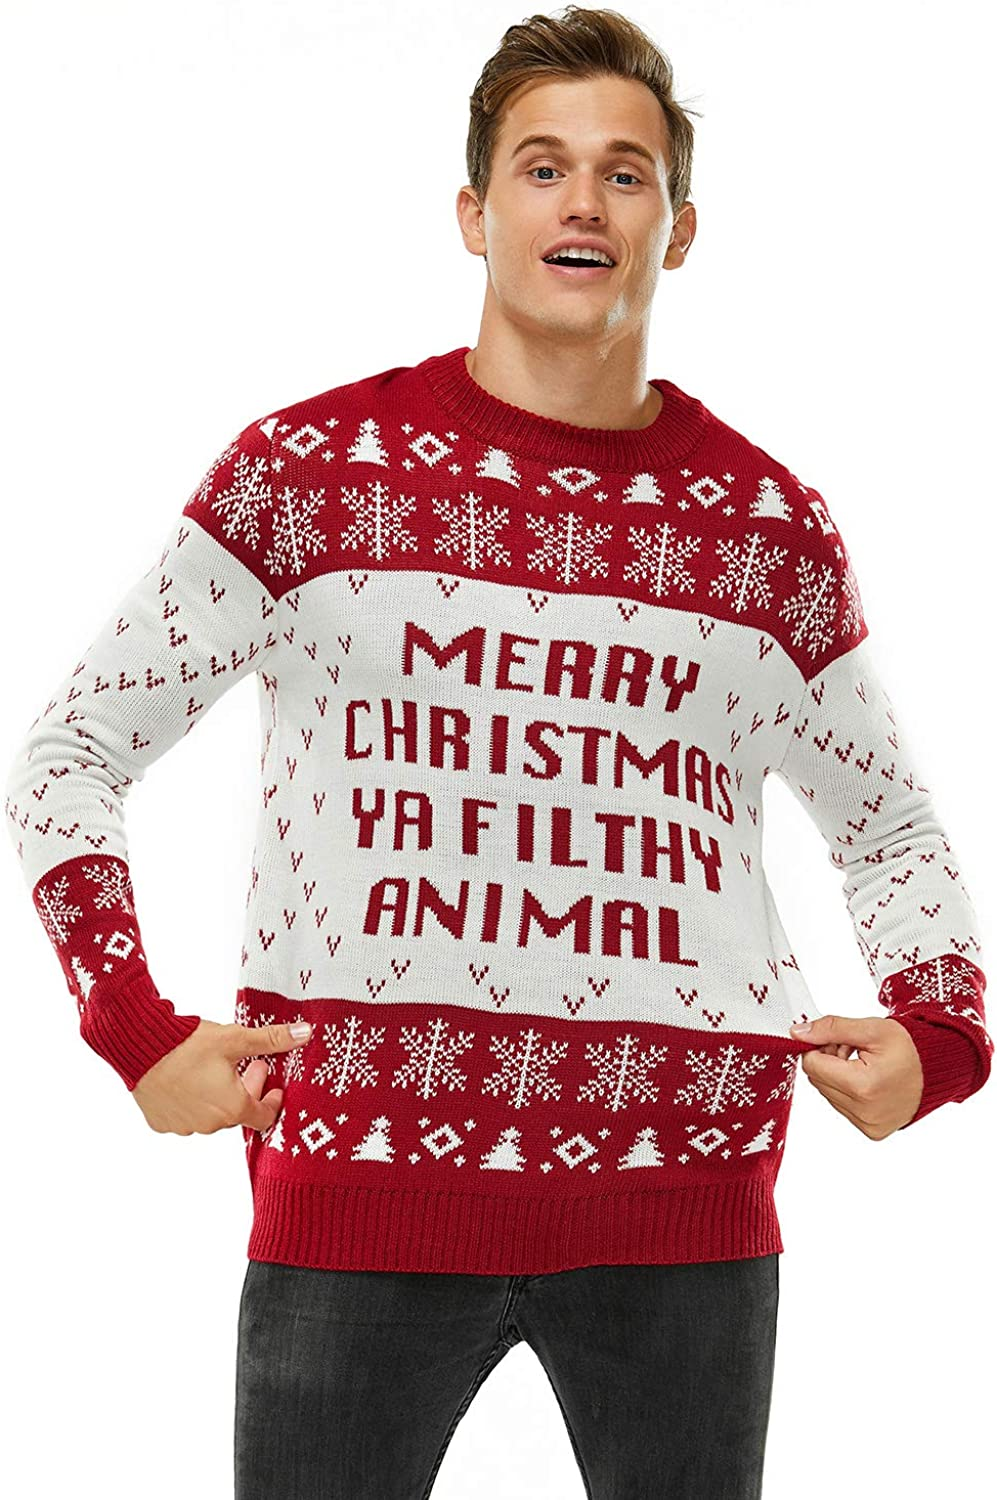 Funny Chunky Knit Xmas Pullover Festive Fair Isle Crowdneck Long Sleeve Jumper for Christmas Jumper Party Ugly Christmas Sweater for Men